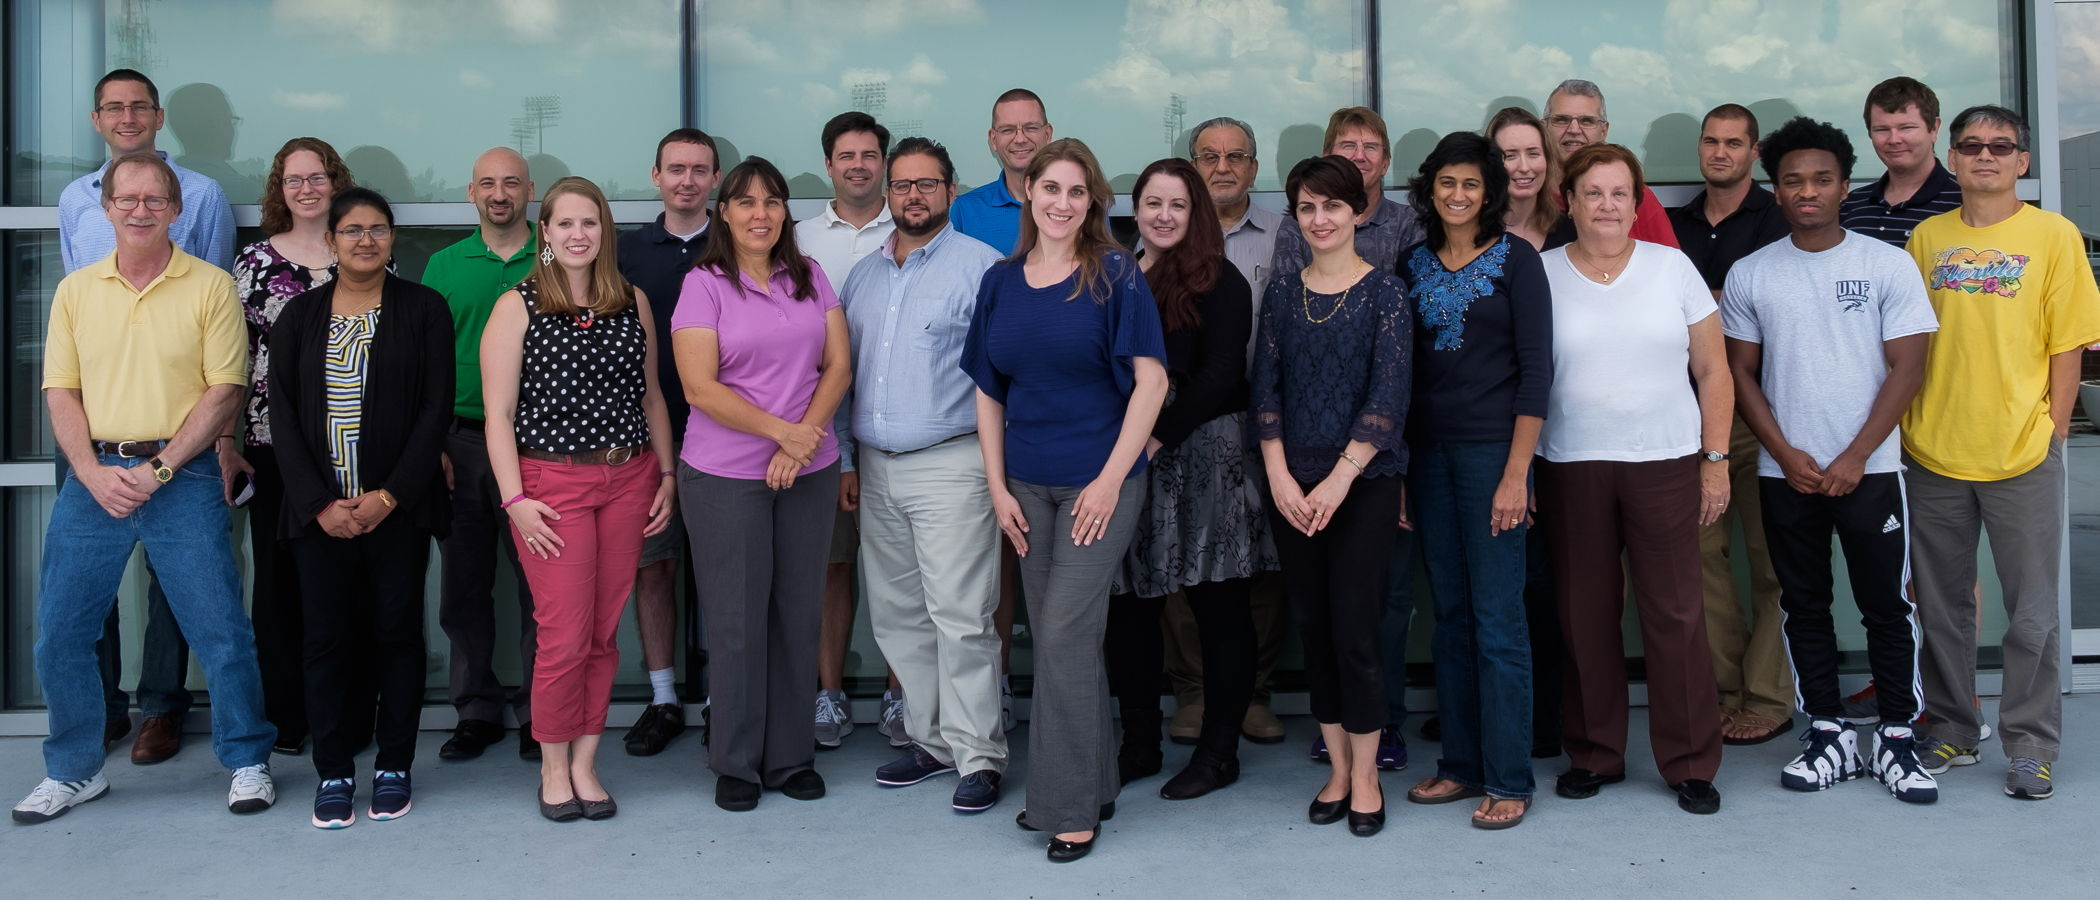 UNF Department of Chemistry - August 2015